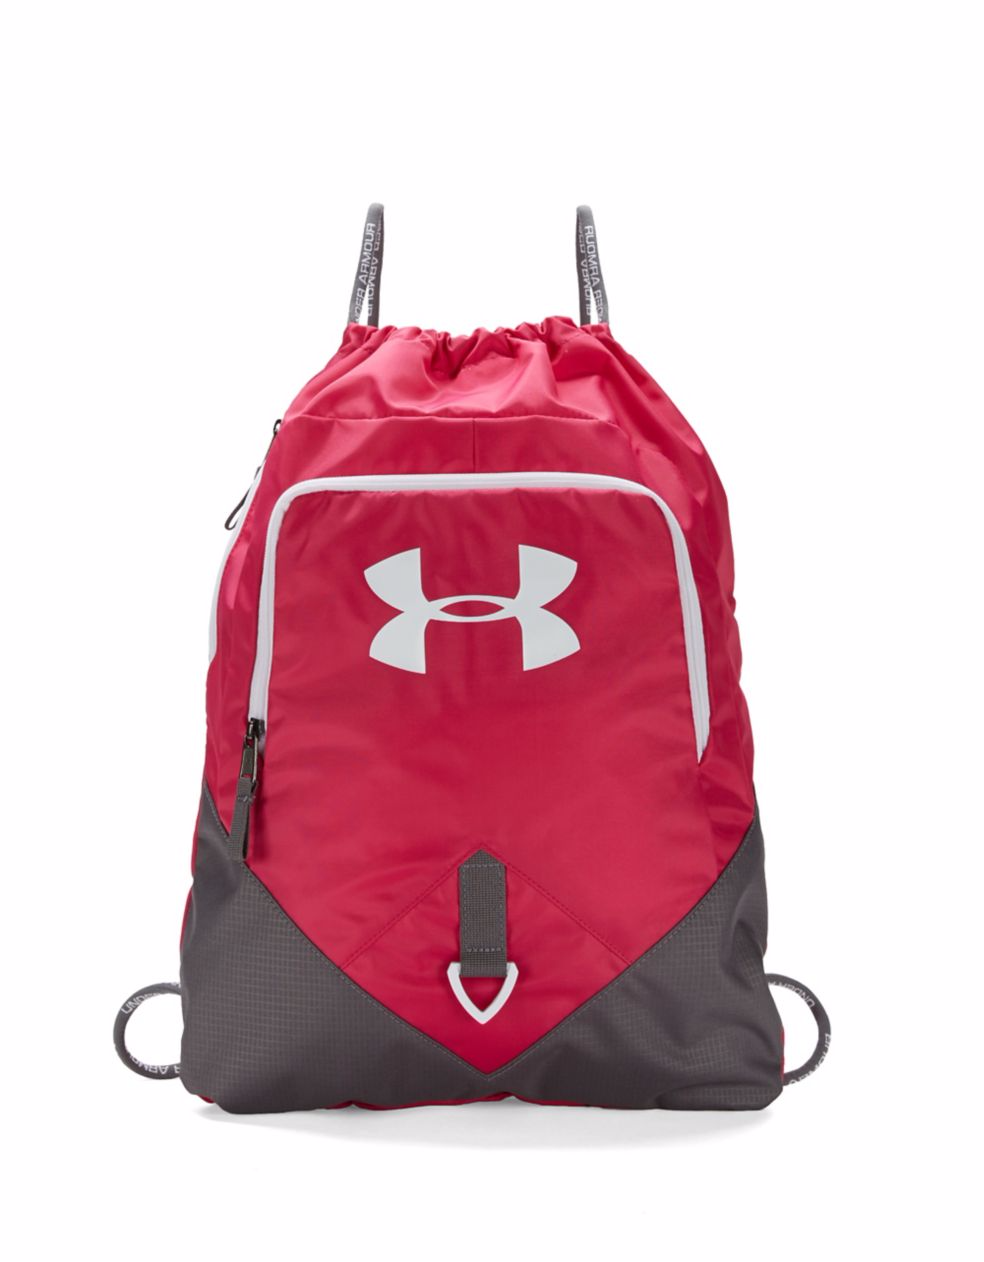 Under Armour & PUMA - Assorted backpacks,bags & lunchboxes $4.90-$16.80 Free Ship @Lord & Taylor